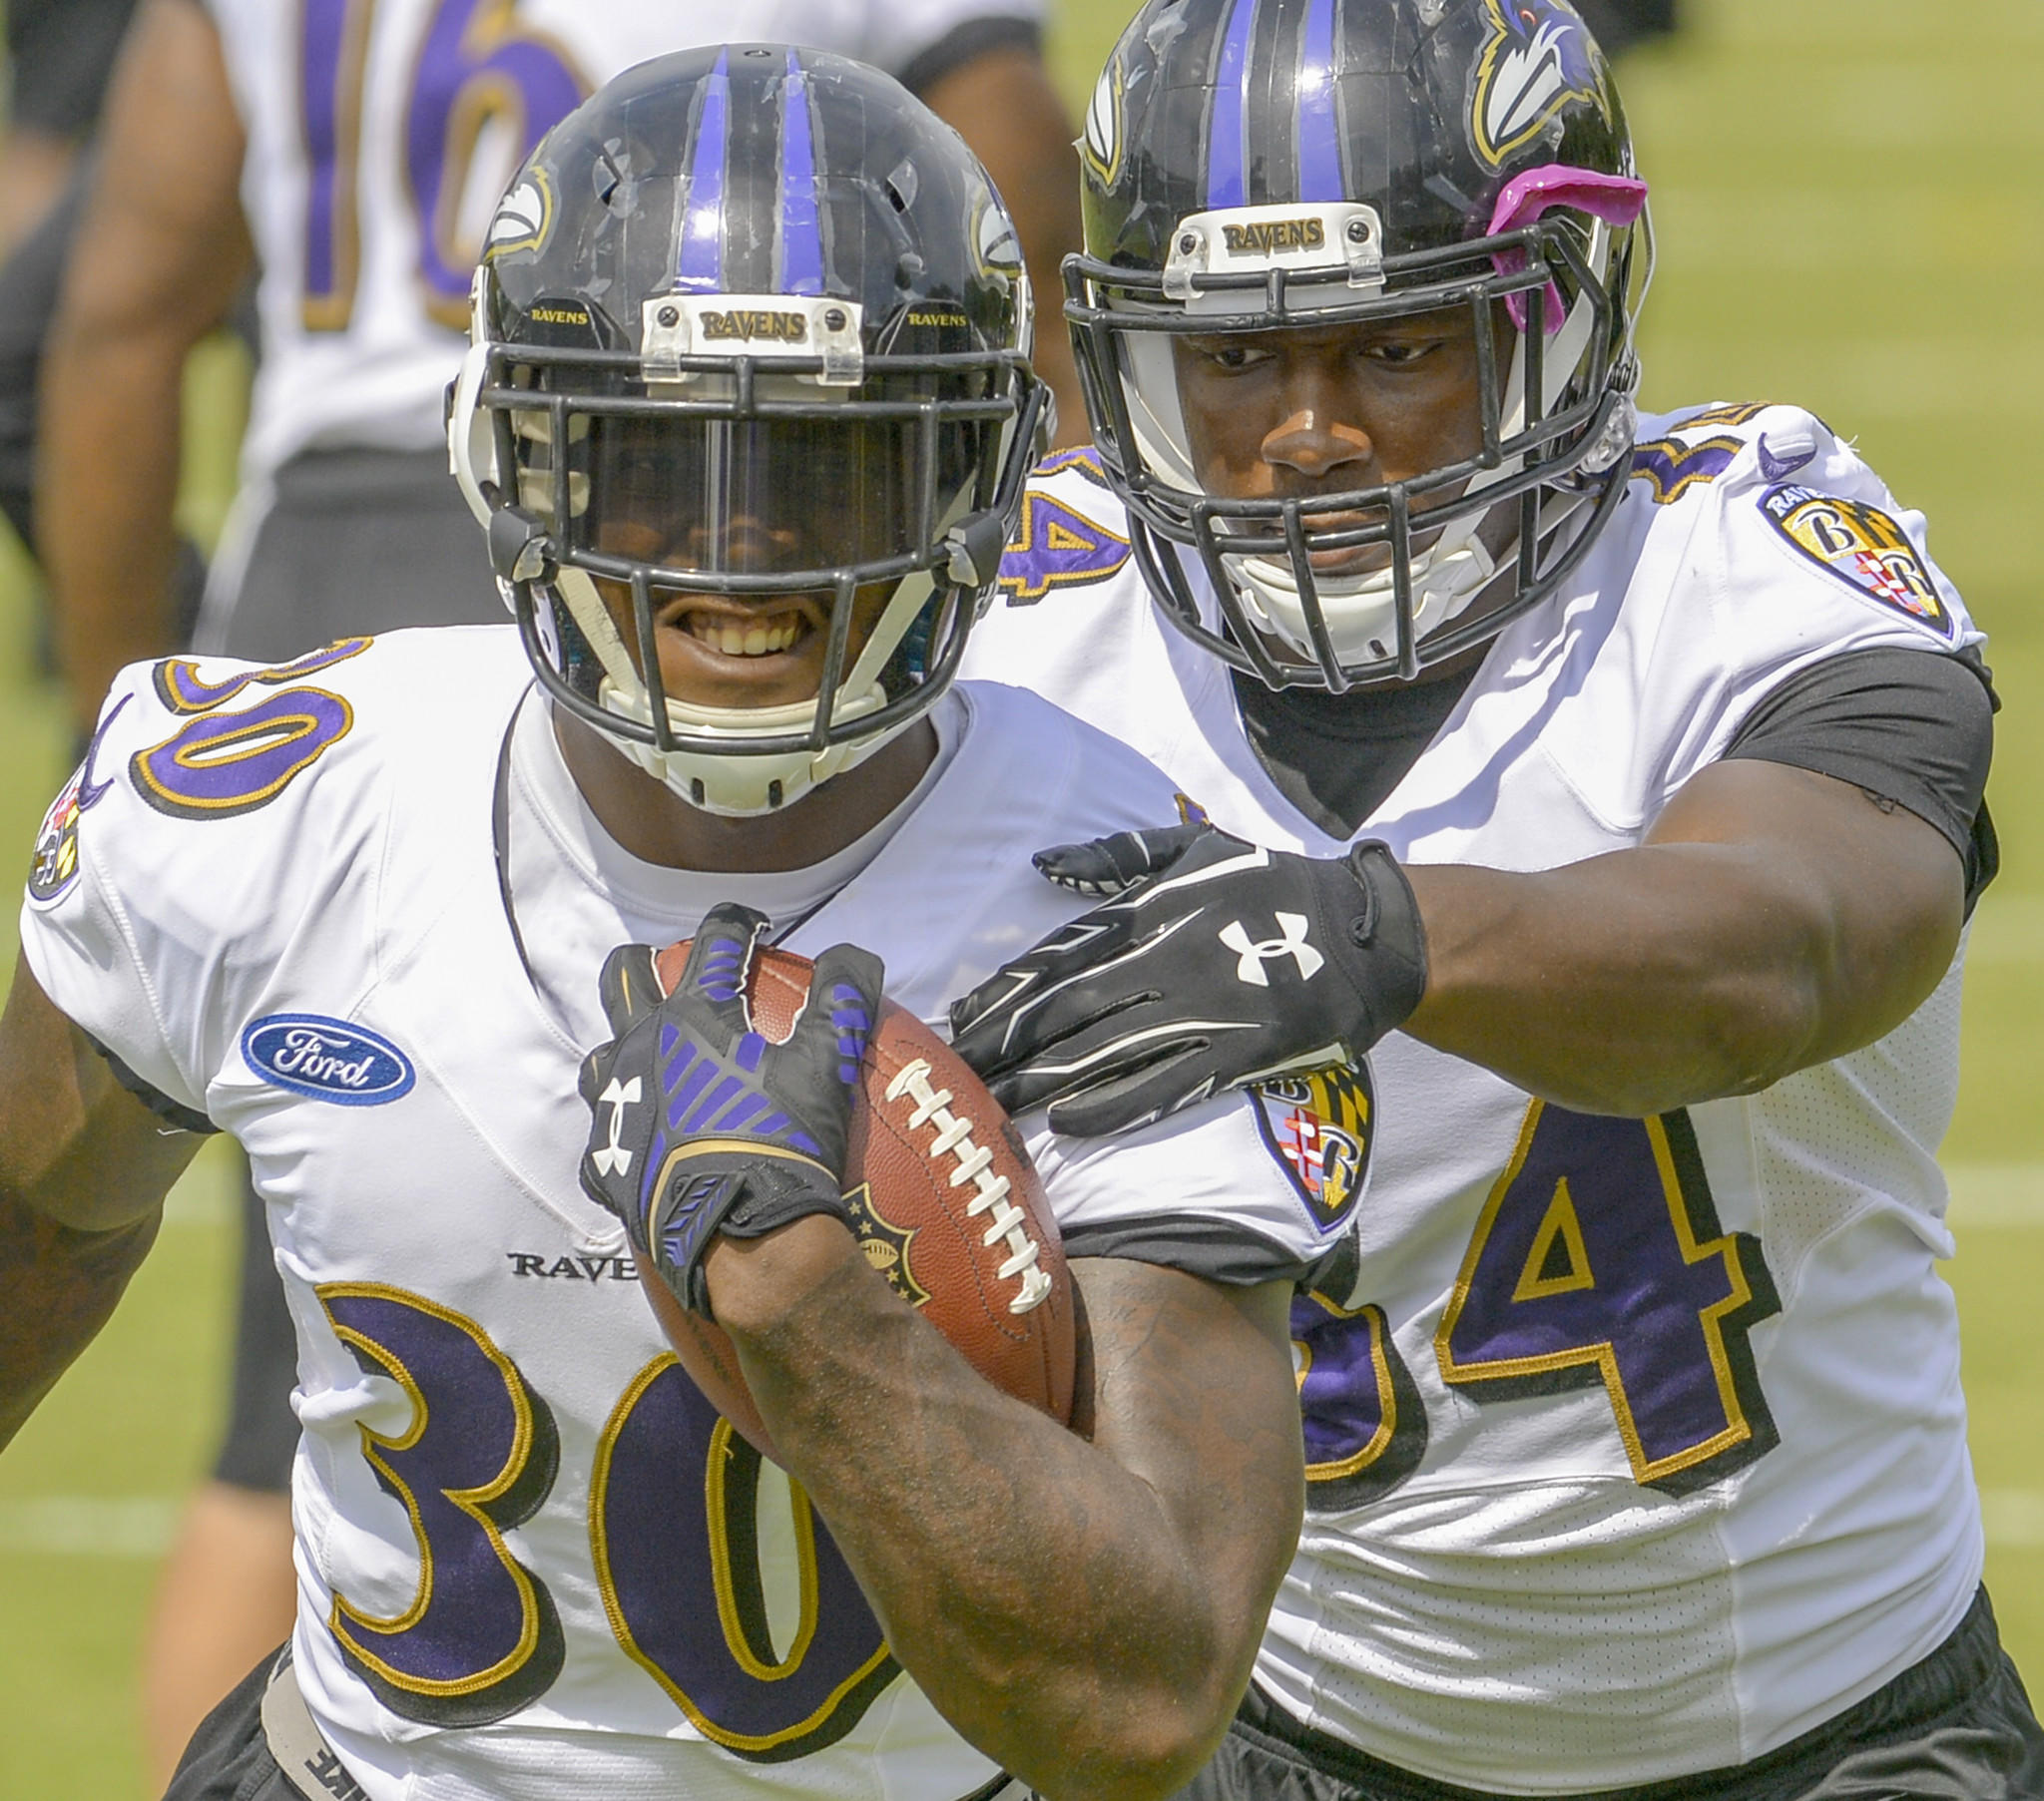 Ravens running backs Bernard Pierce and Lorenzo Taliaferro work against each other during a drill during training camp.